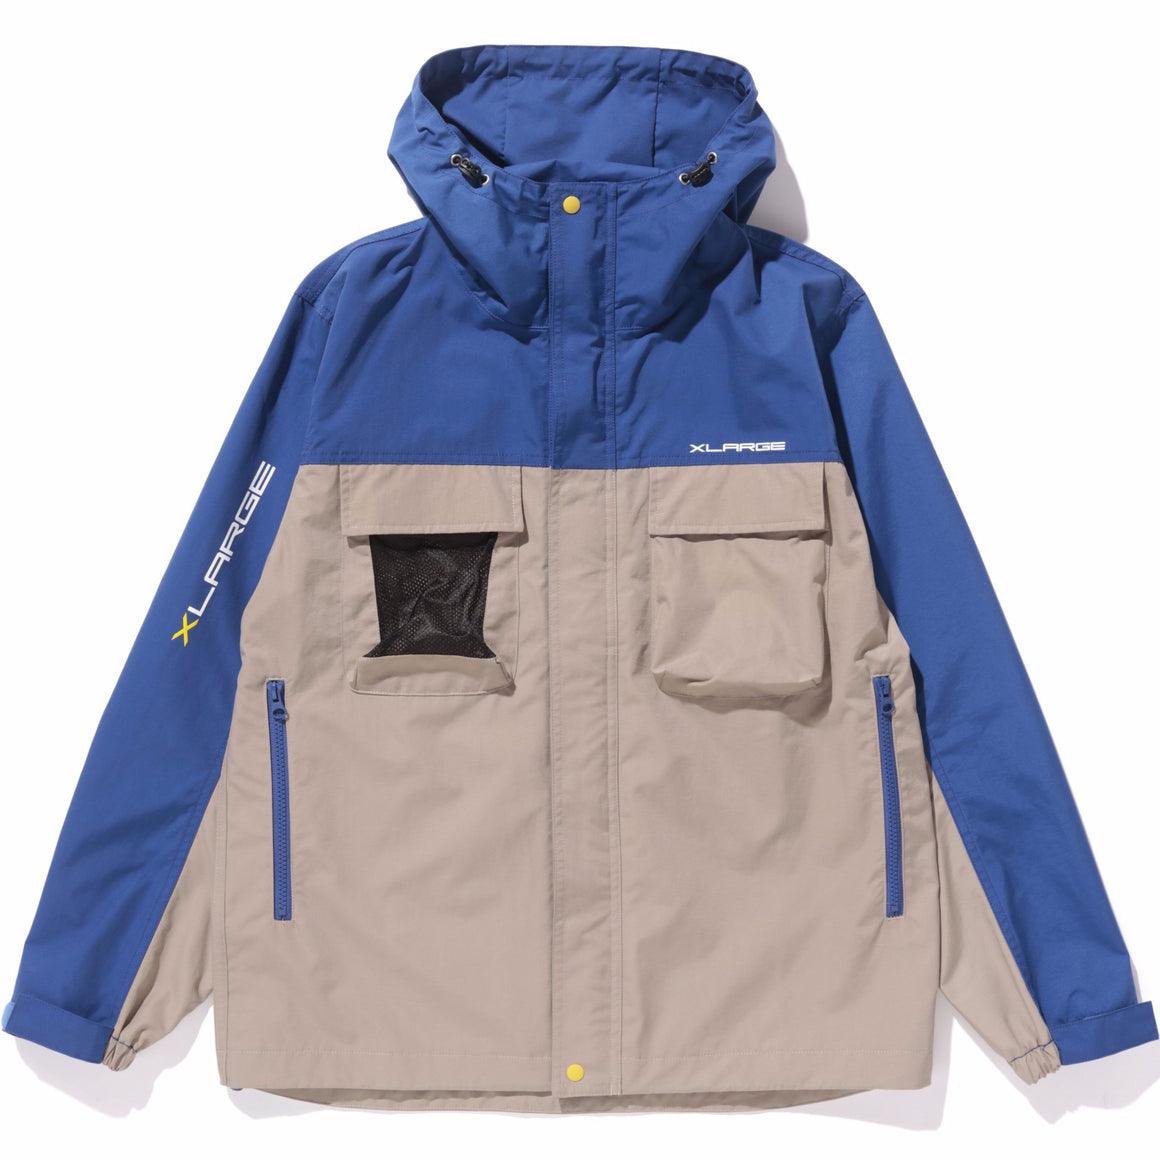 HOODED NYLON JACKET - X-Large Clothing